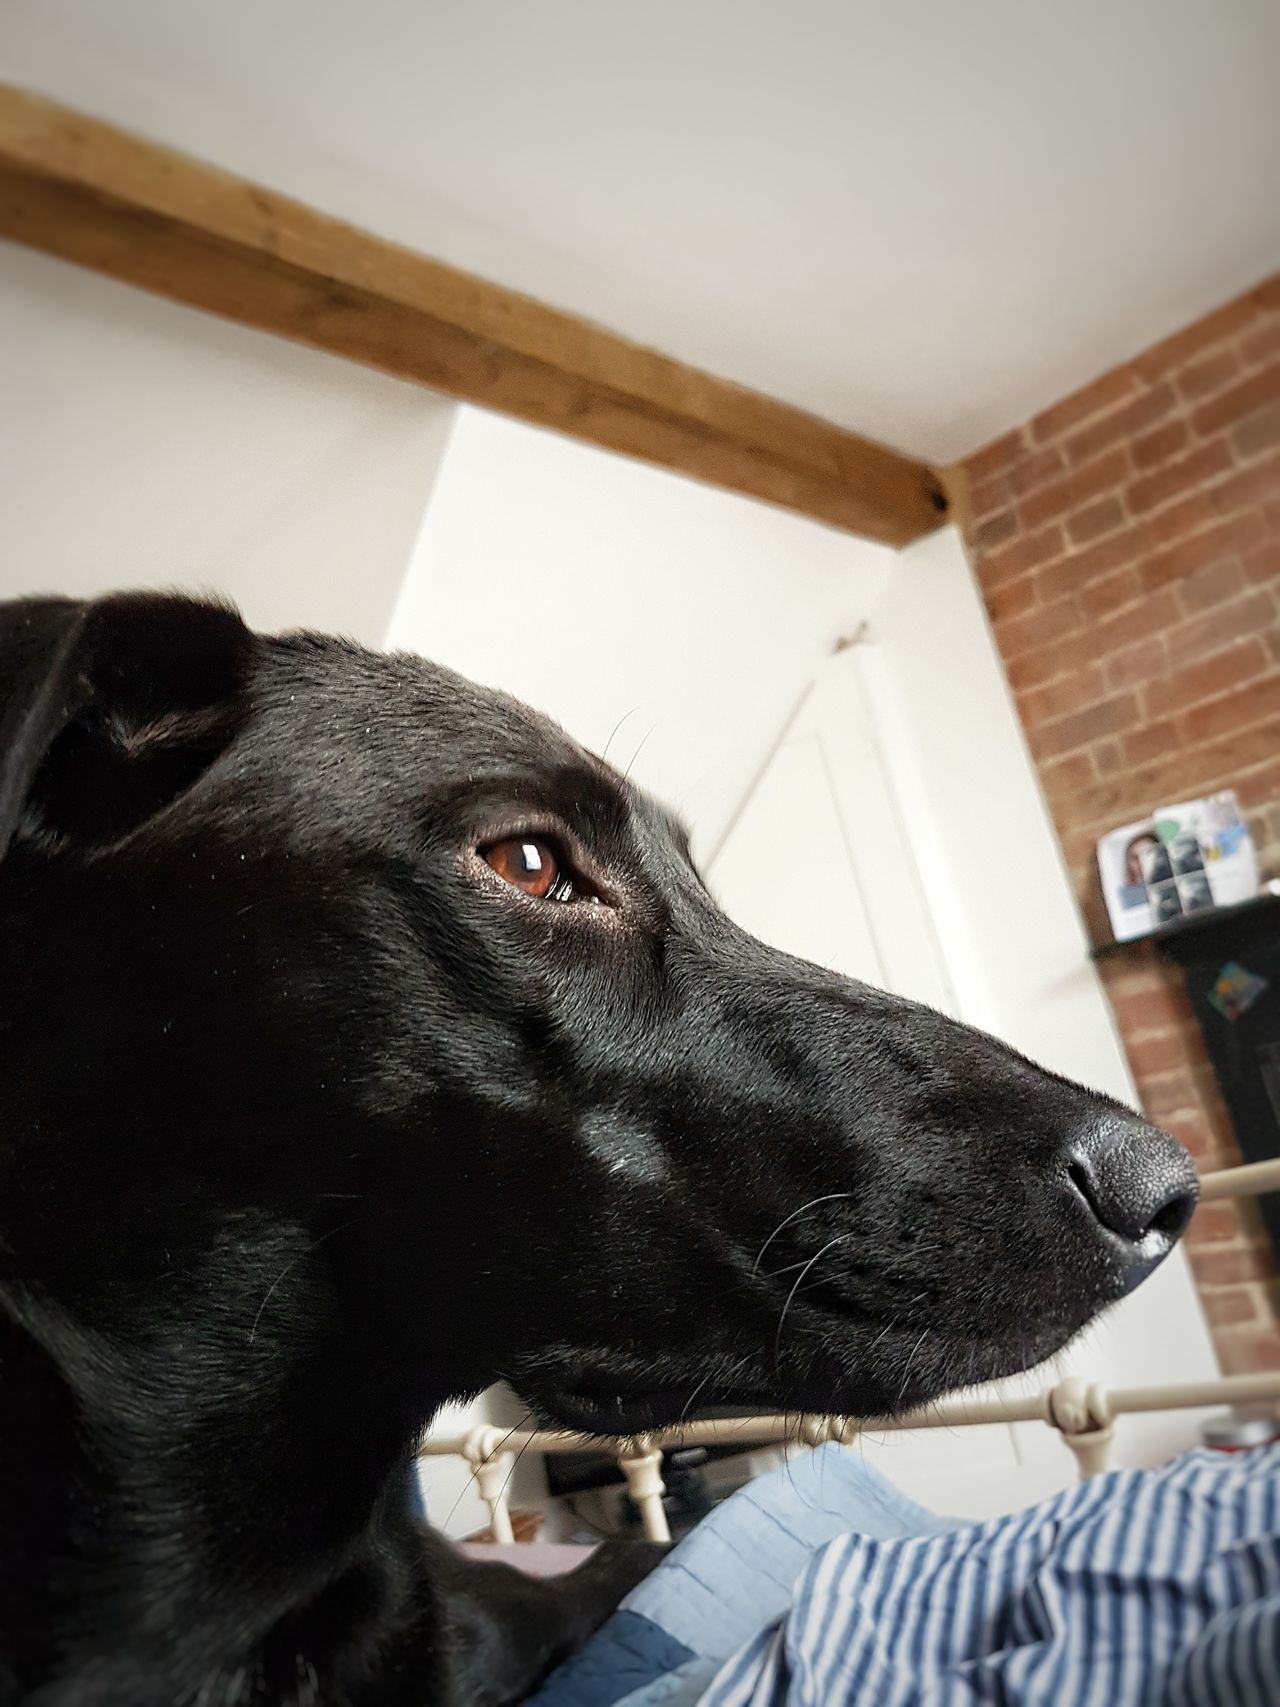 One Animal Pets Animal Themes Indoors  Domestic Animals Sitting Close-up Portrait One Person Mammal Dog Day Sky People